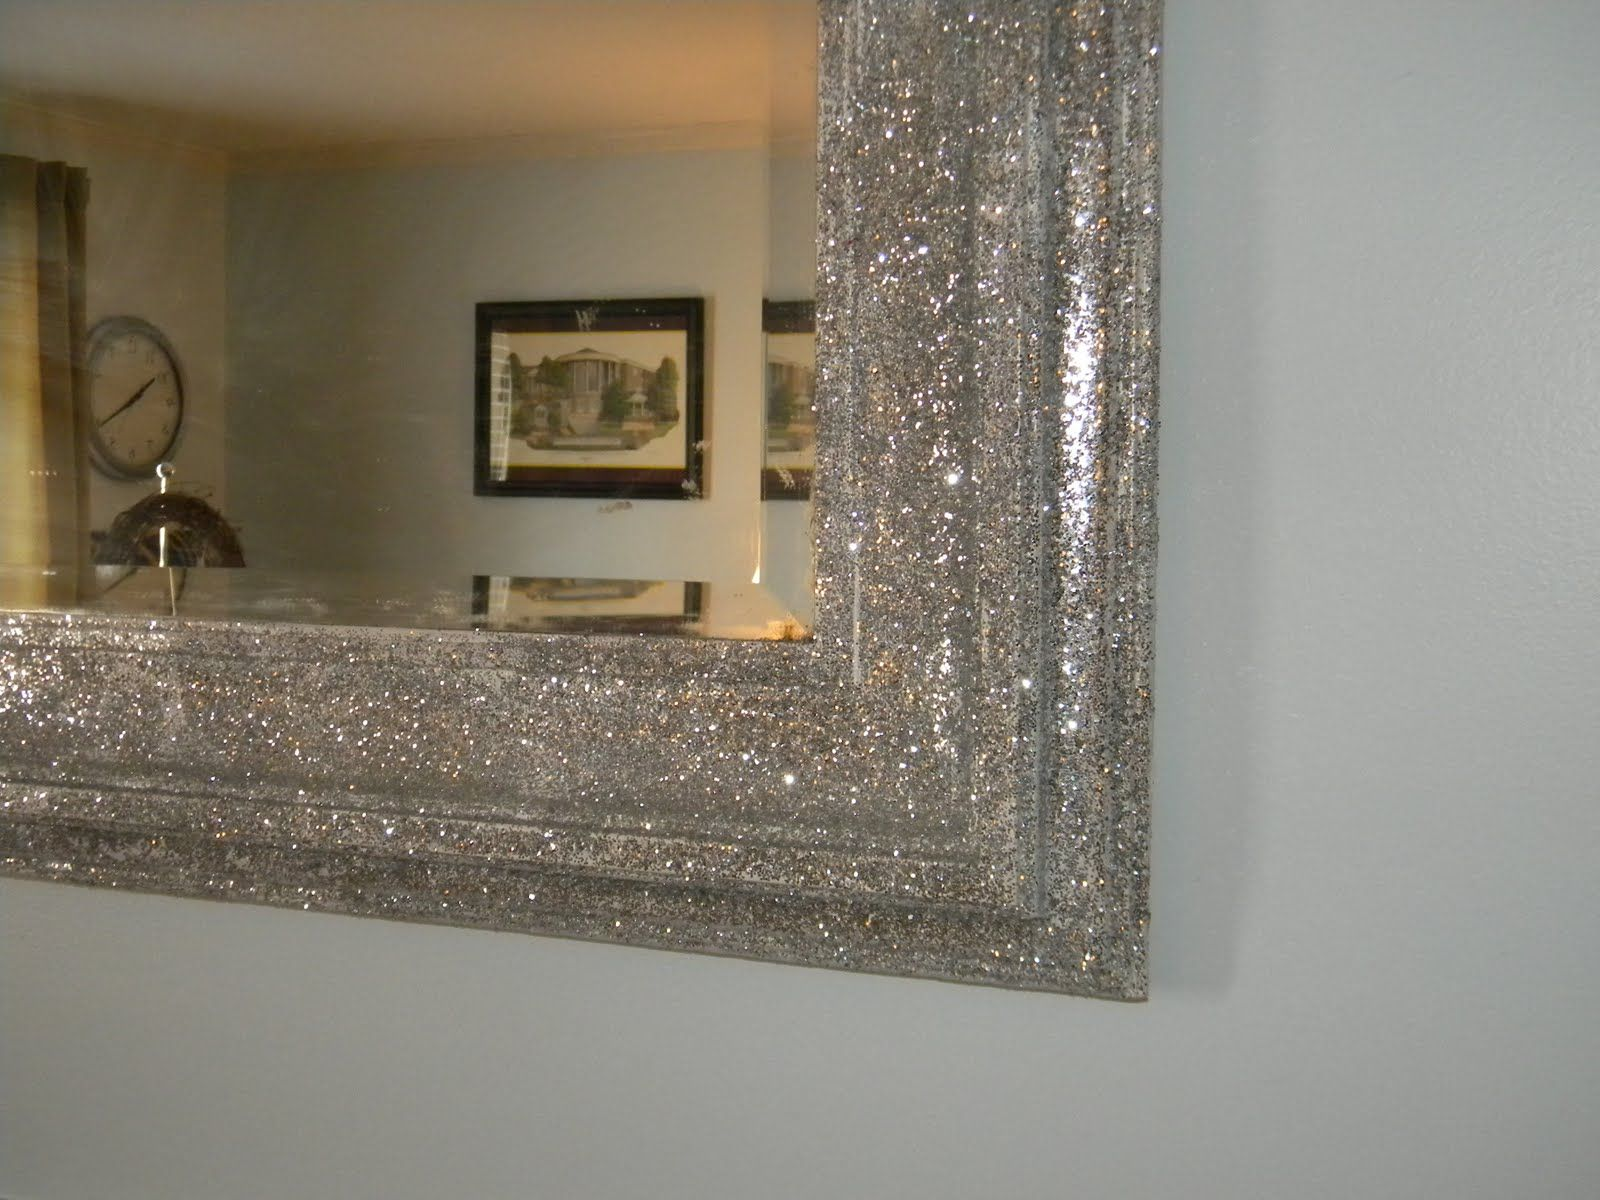 a few years ago my dad saw a large framed mirror on the side